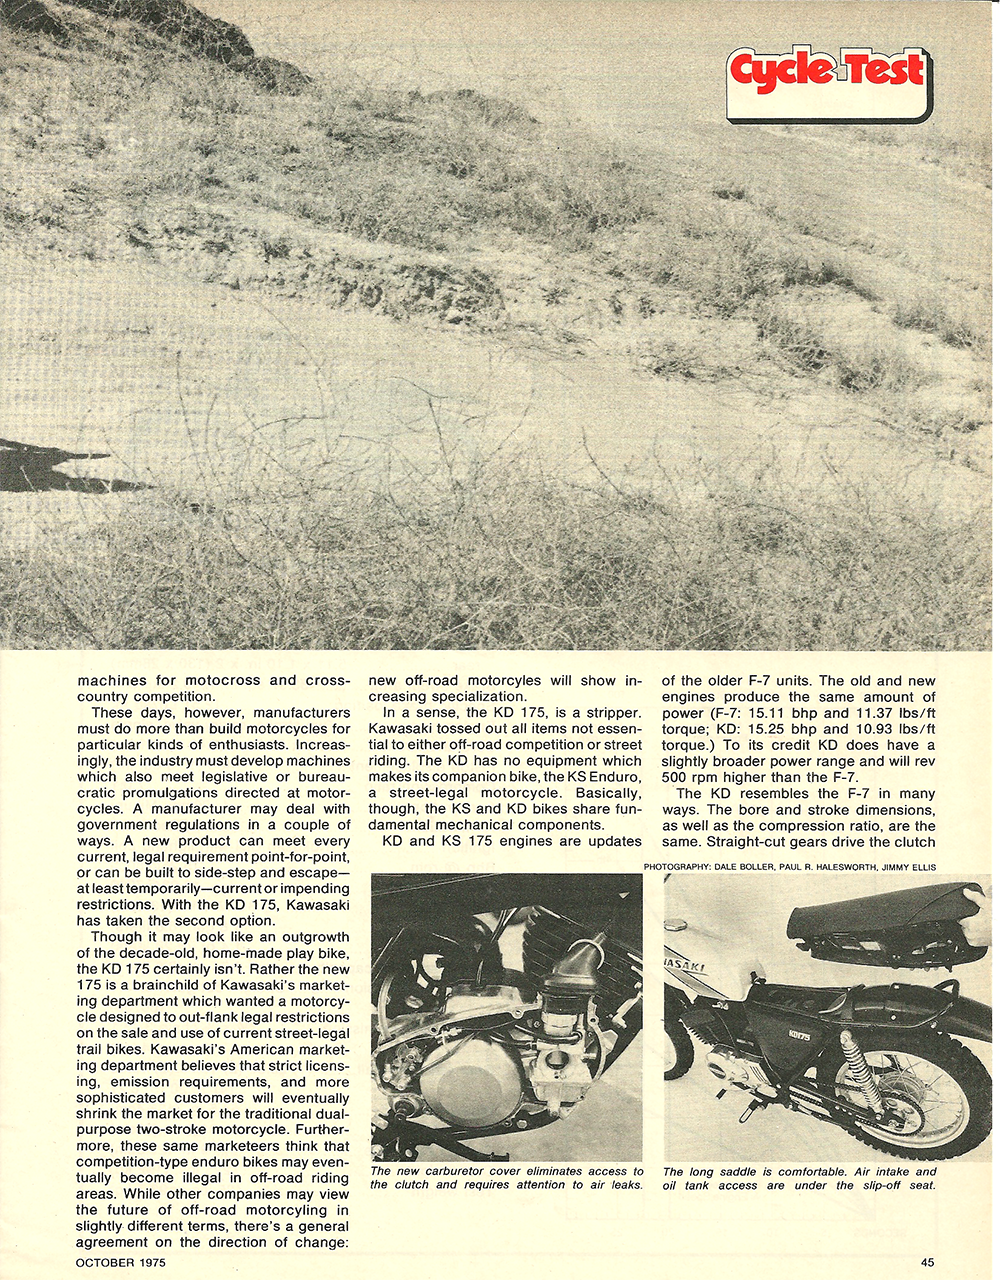 1975 Kawasaki KD 175 road test 2.png